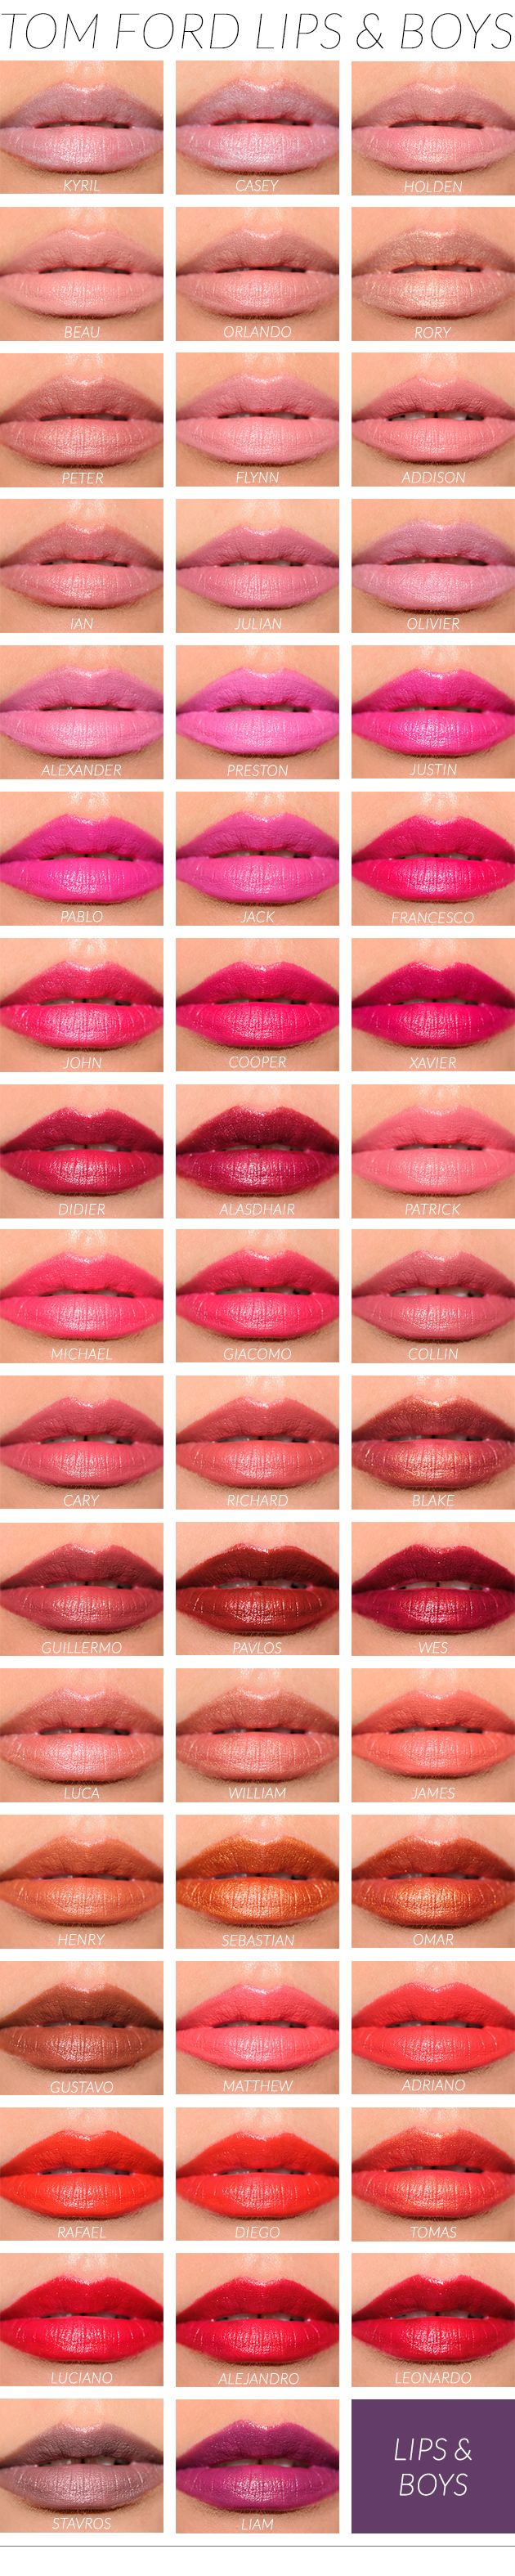 You can view all swatches of these shades here in gallery format or find reviews here. You can access the round-up/overview here. The limited edition Lips